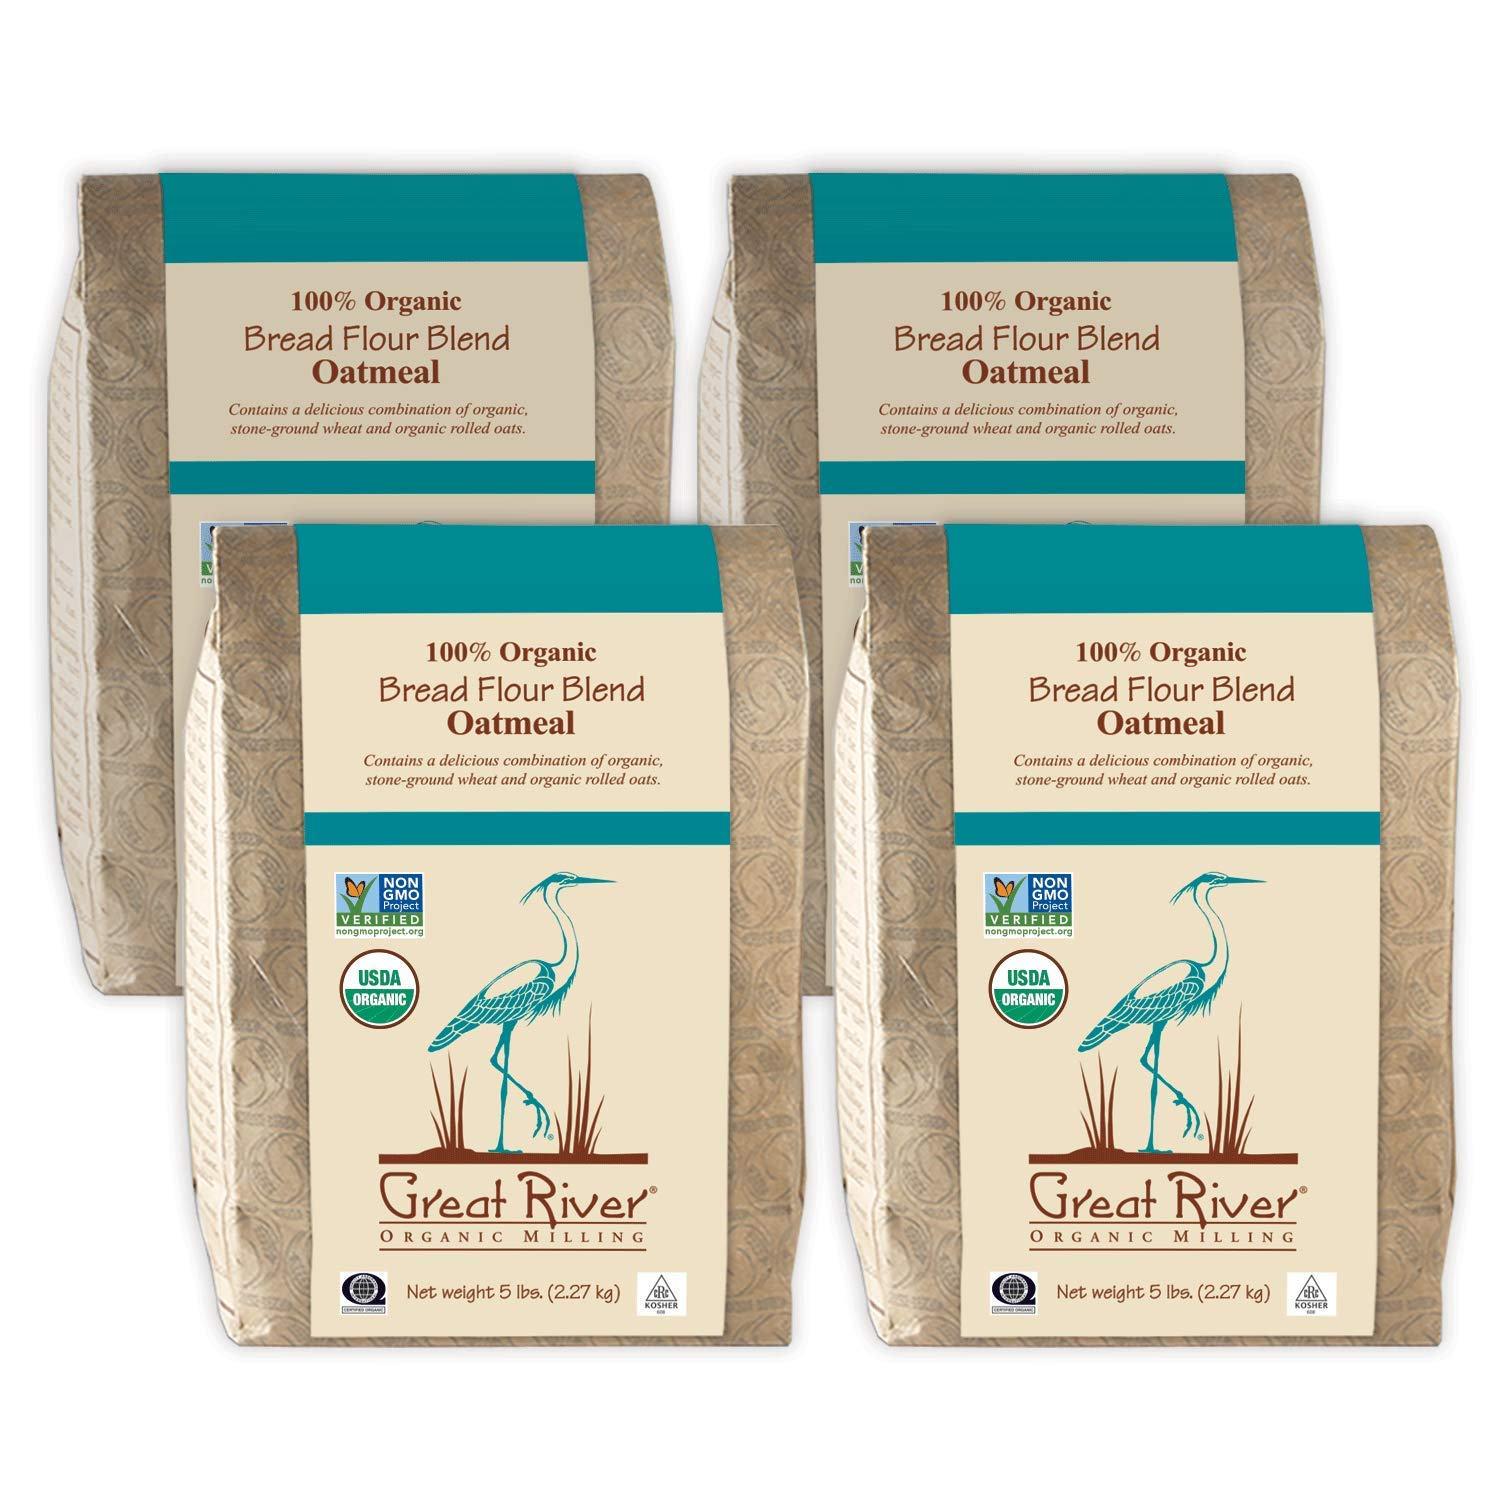 Great Popular brand in the world River Organic Surprise price Milling Bread S Flour Oatmeal Blend